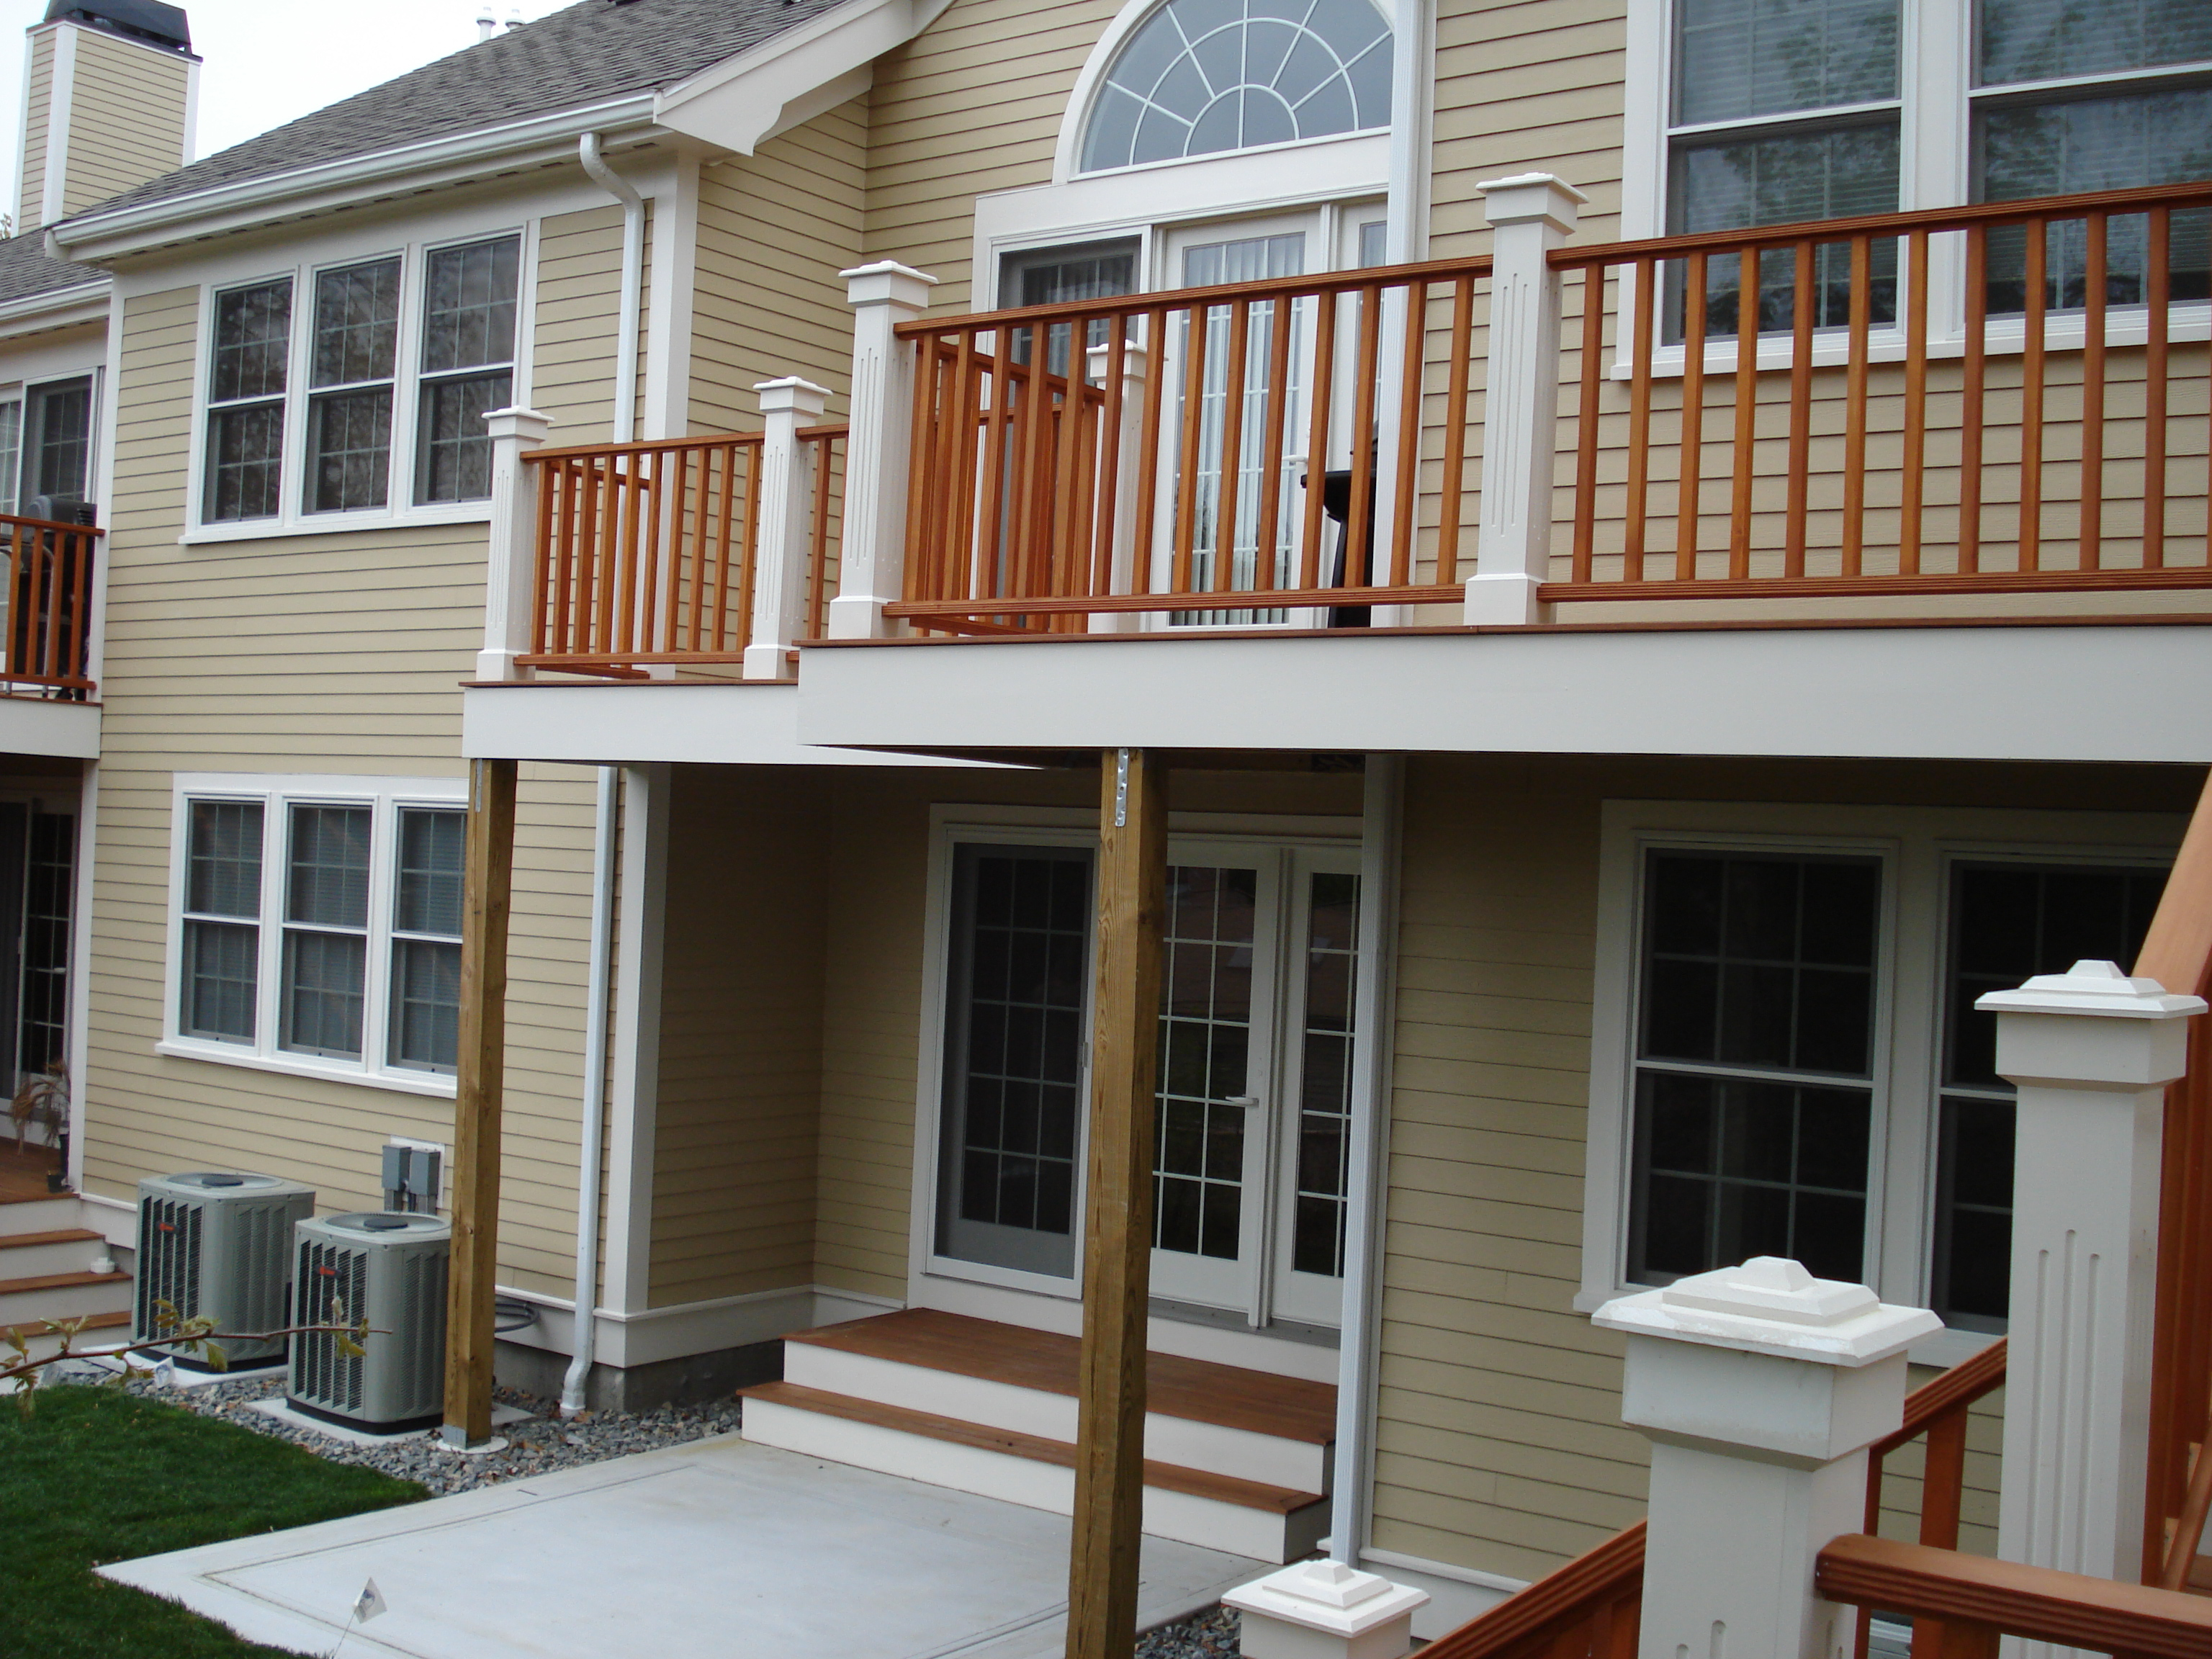 Types of wood siding for houses excellent with types of for Types of house siding